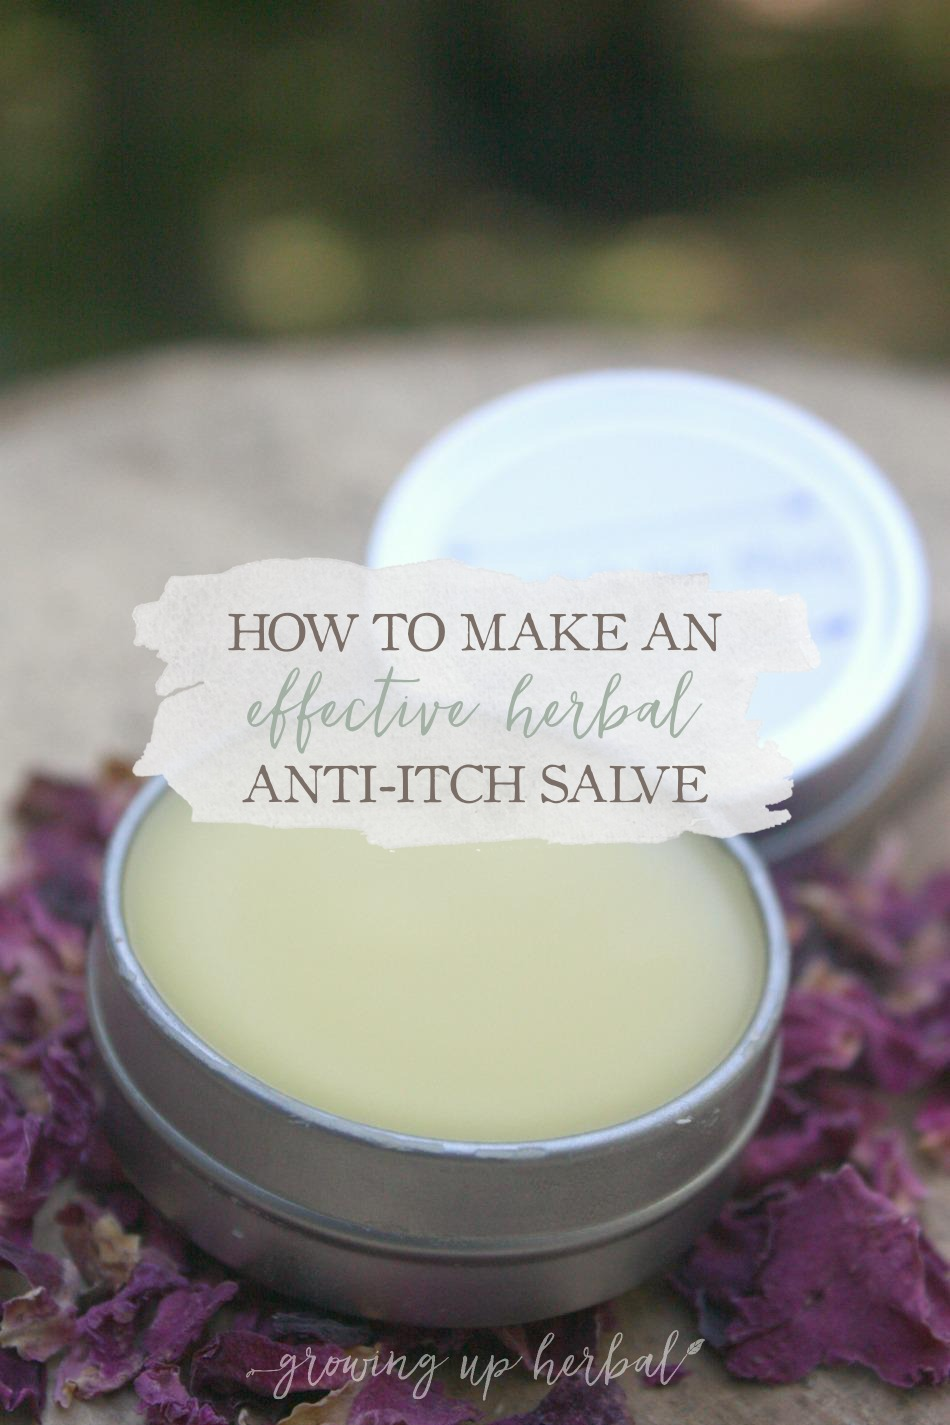 How To Make An Effective Herbal Anti-Itch Salve | Growing Up Herbal | Preventing bug bites is key, but what do you do to stop the itch if you or your kid does end up with them? Try this effective herbal anti-itch salve next time and see what you think!